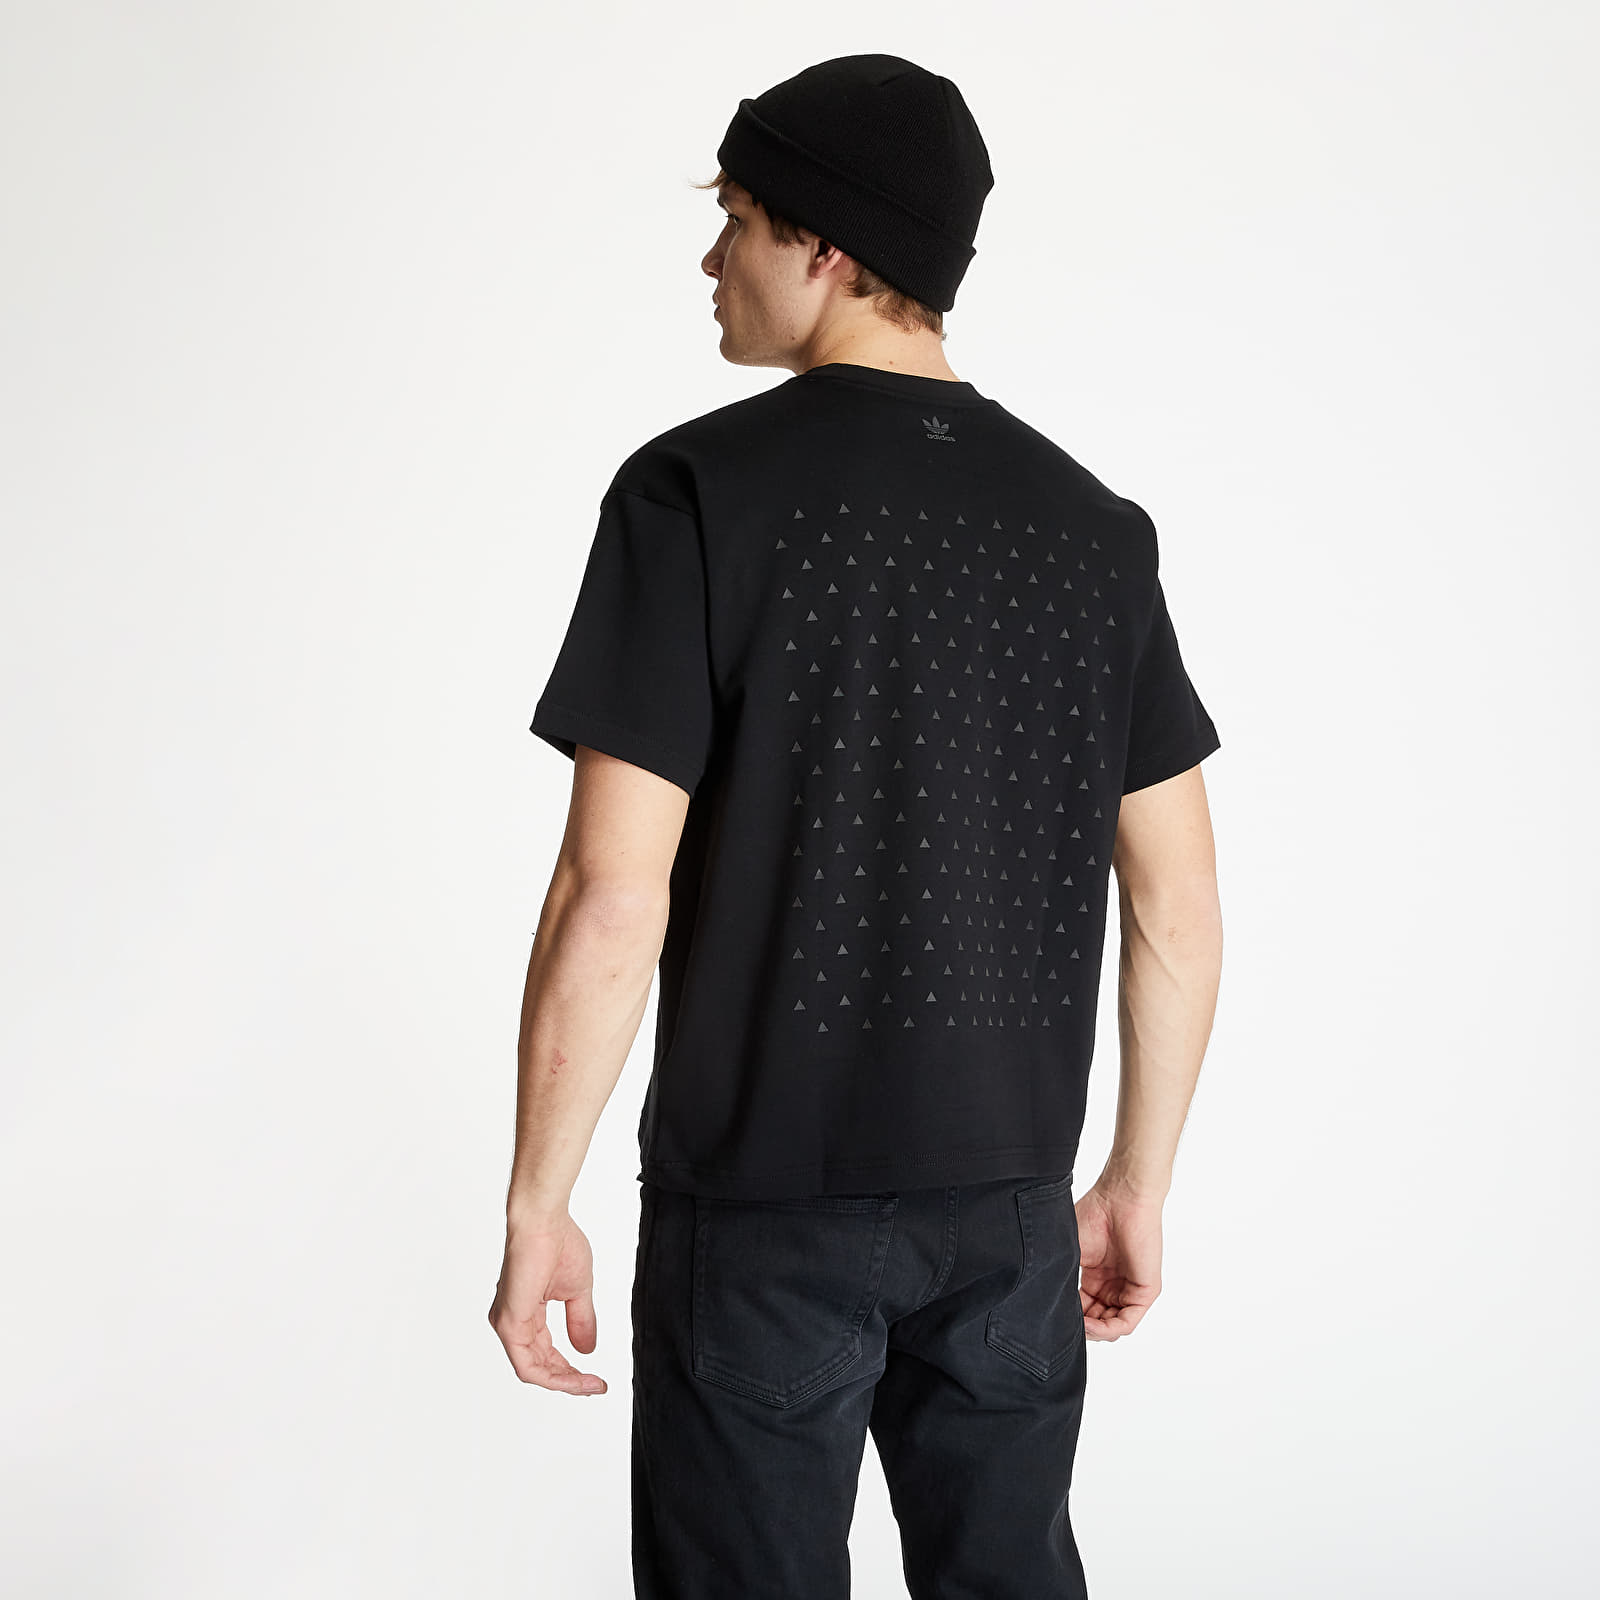 Tričká adidas x Pharrell Williams Premium Basics Shirt Black